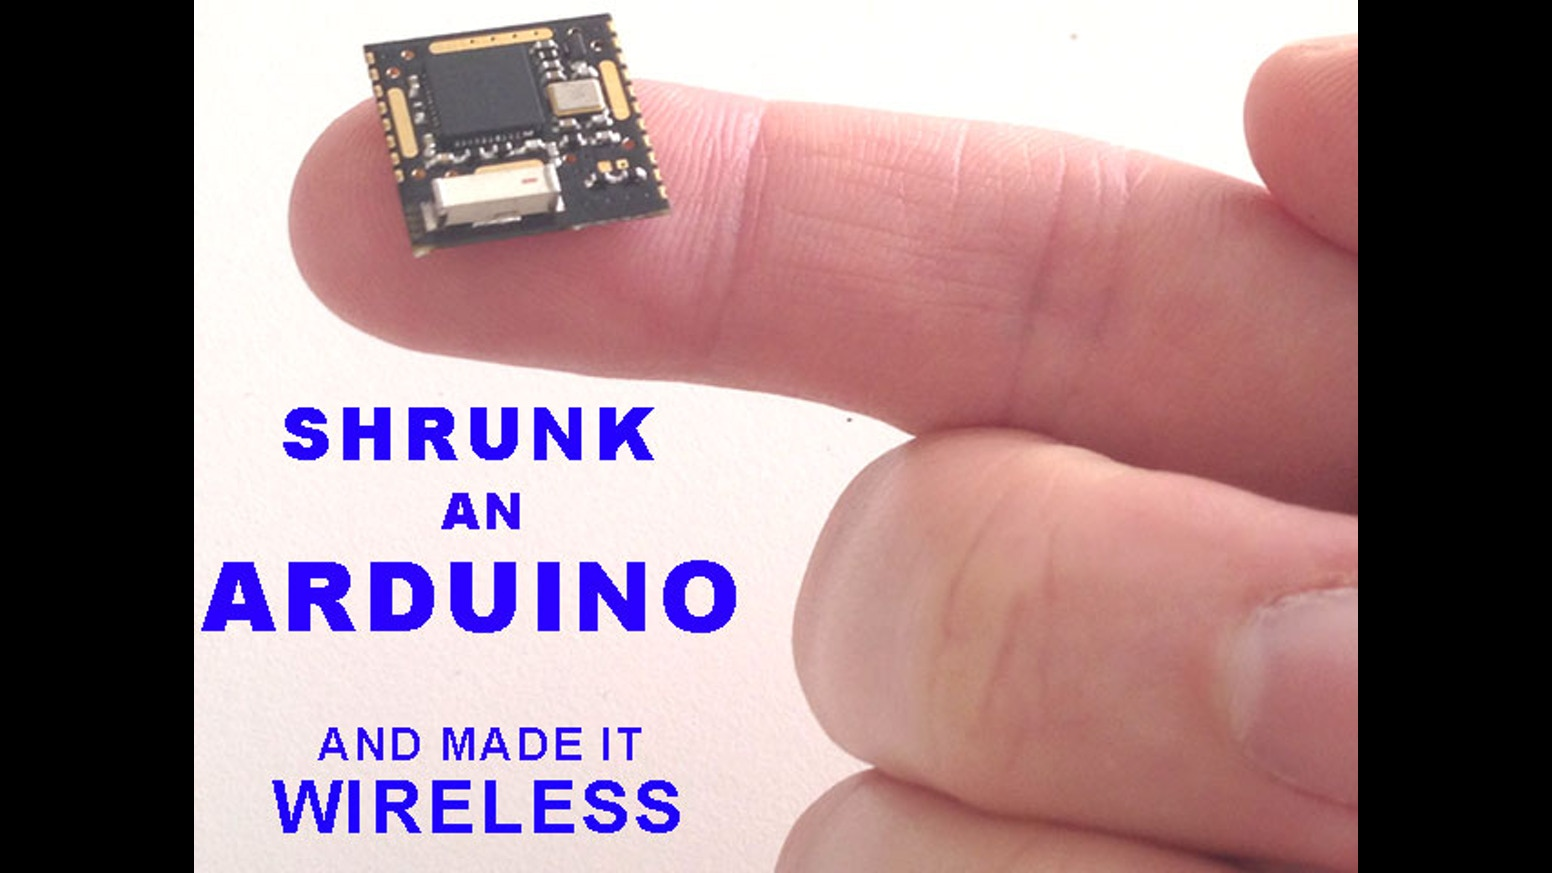 Shrunk down an arduino to the size of a finger tip by